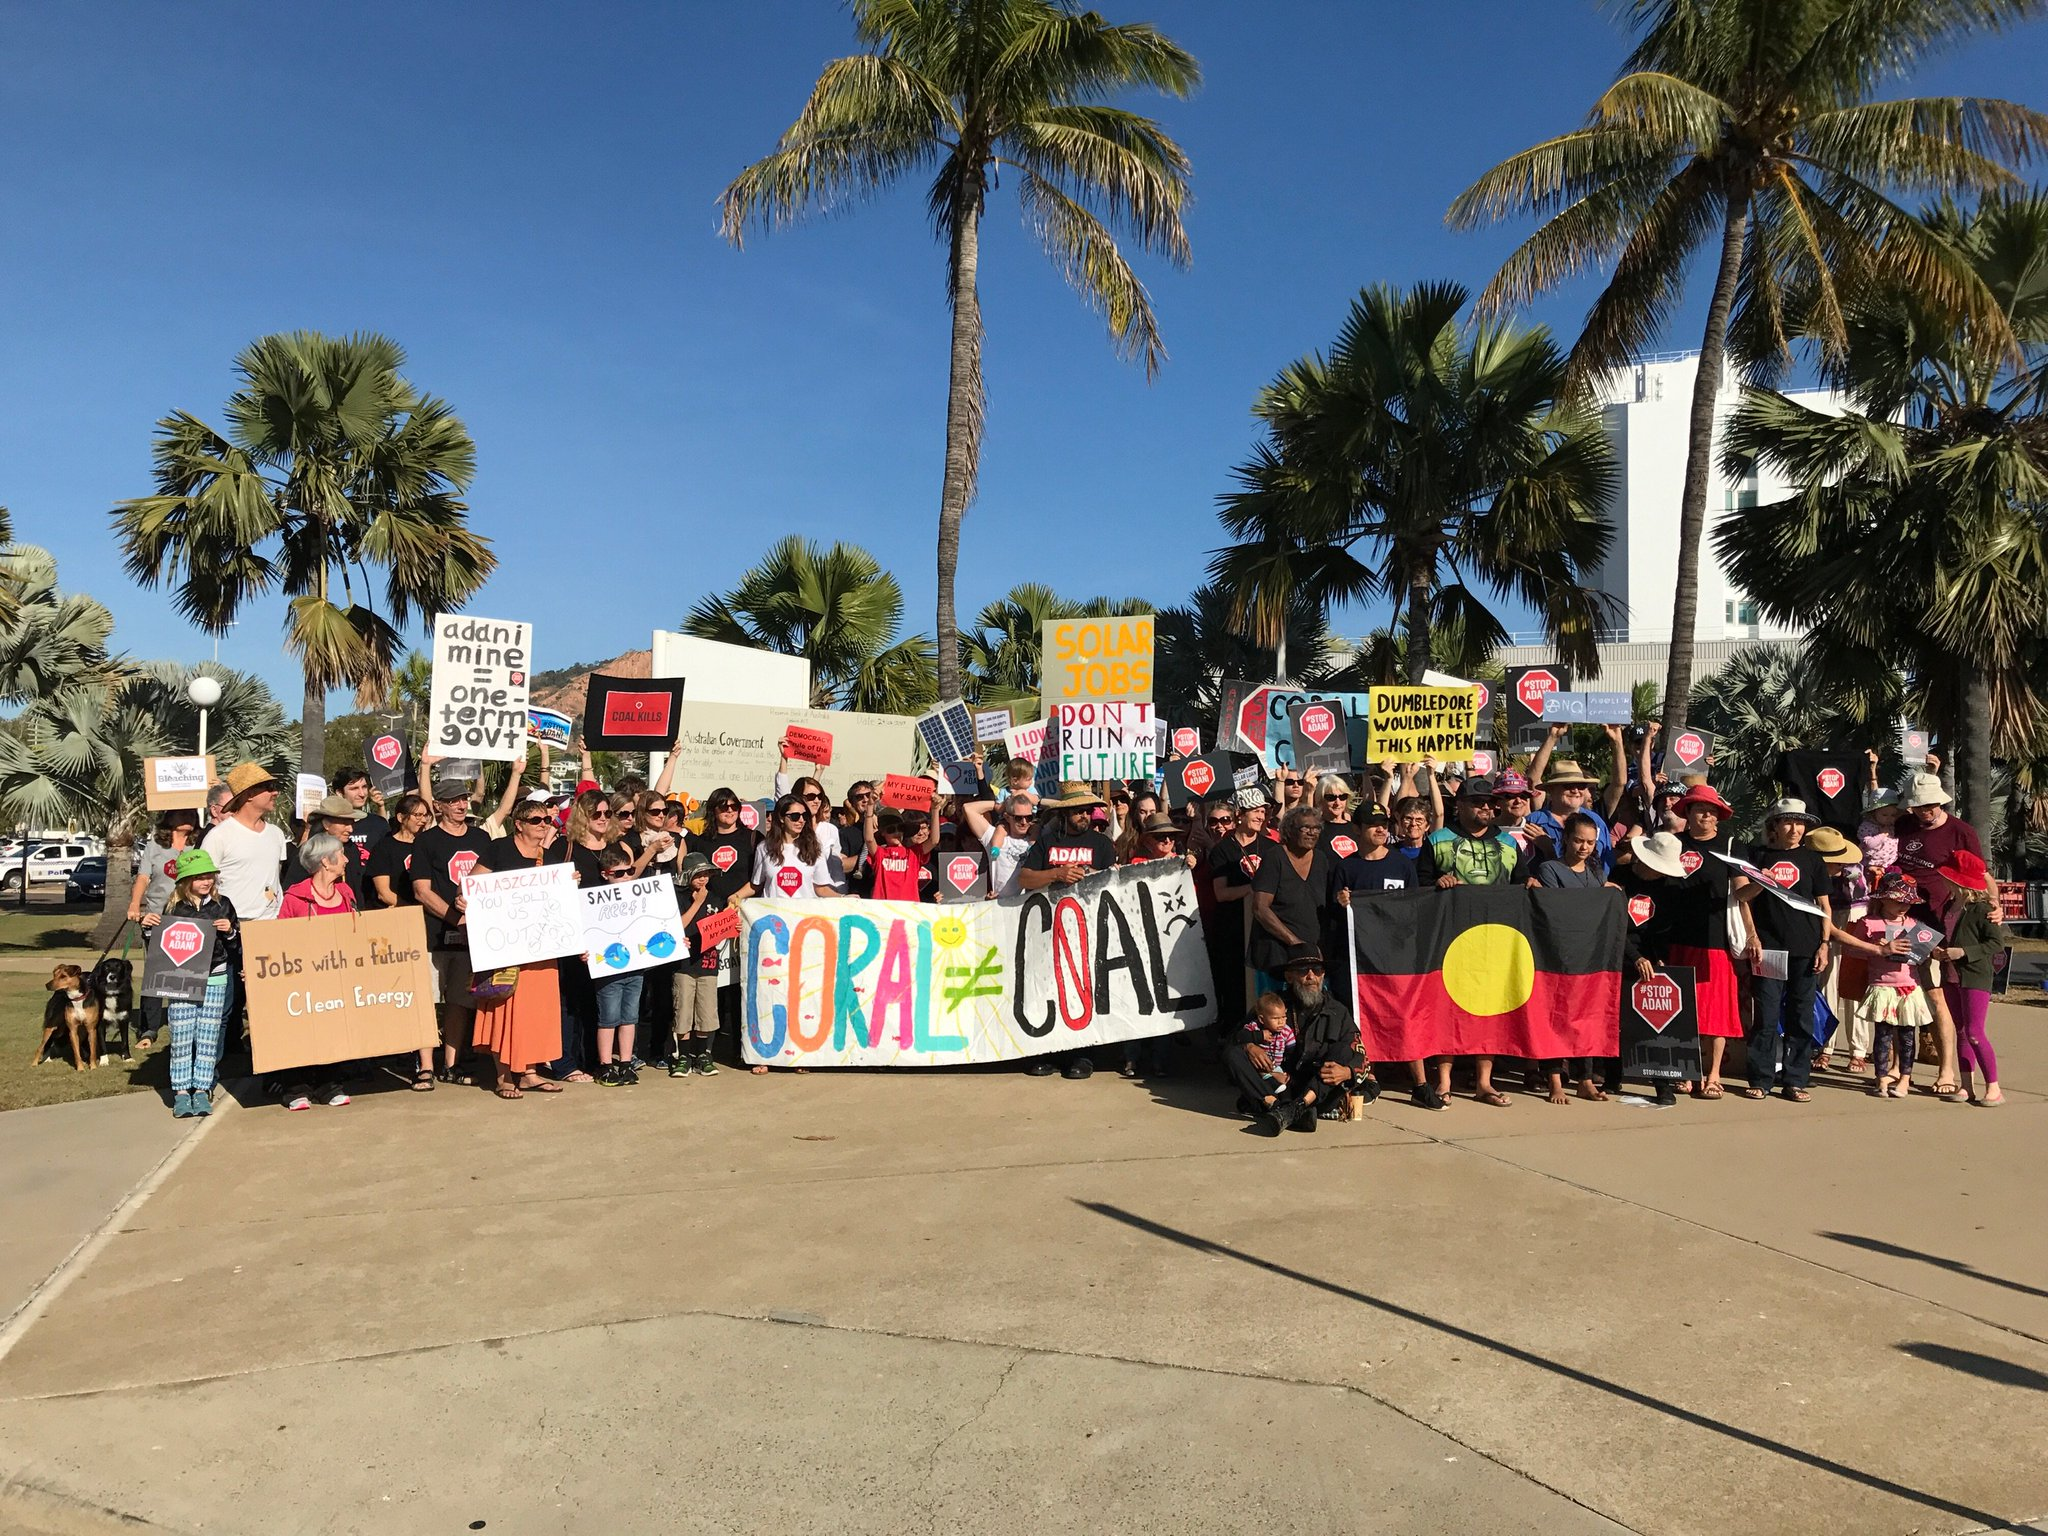 NOW in Townsville: Two hundred protestors Juru Traditional owner Aunty Carol Prior say NO to Adani outside State ALP conference #StopAdani https://t.co/uMsqXrjsAS